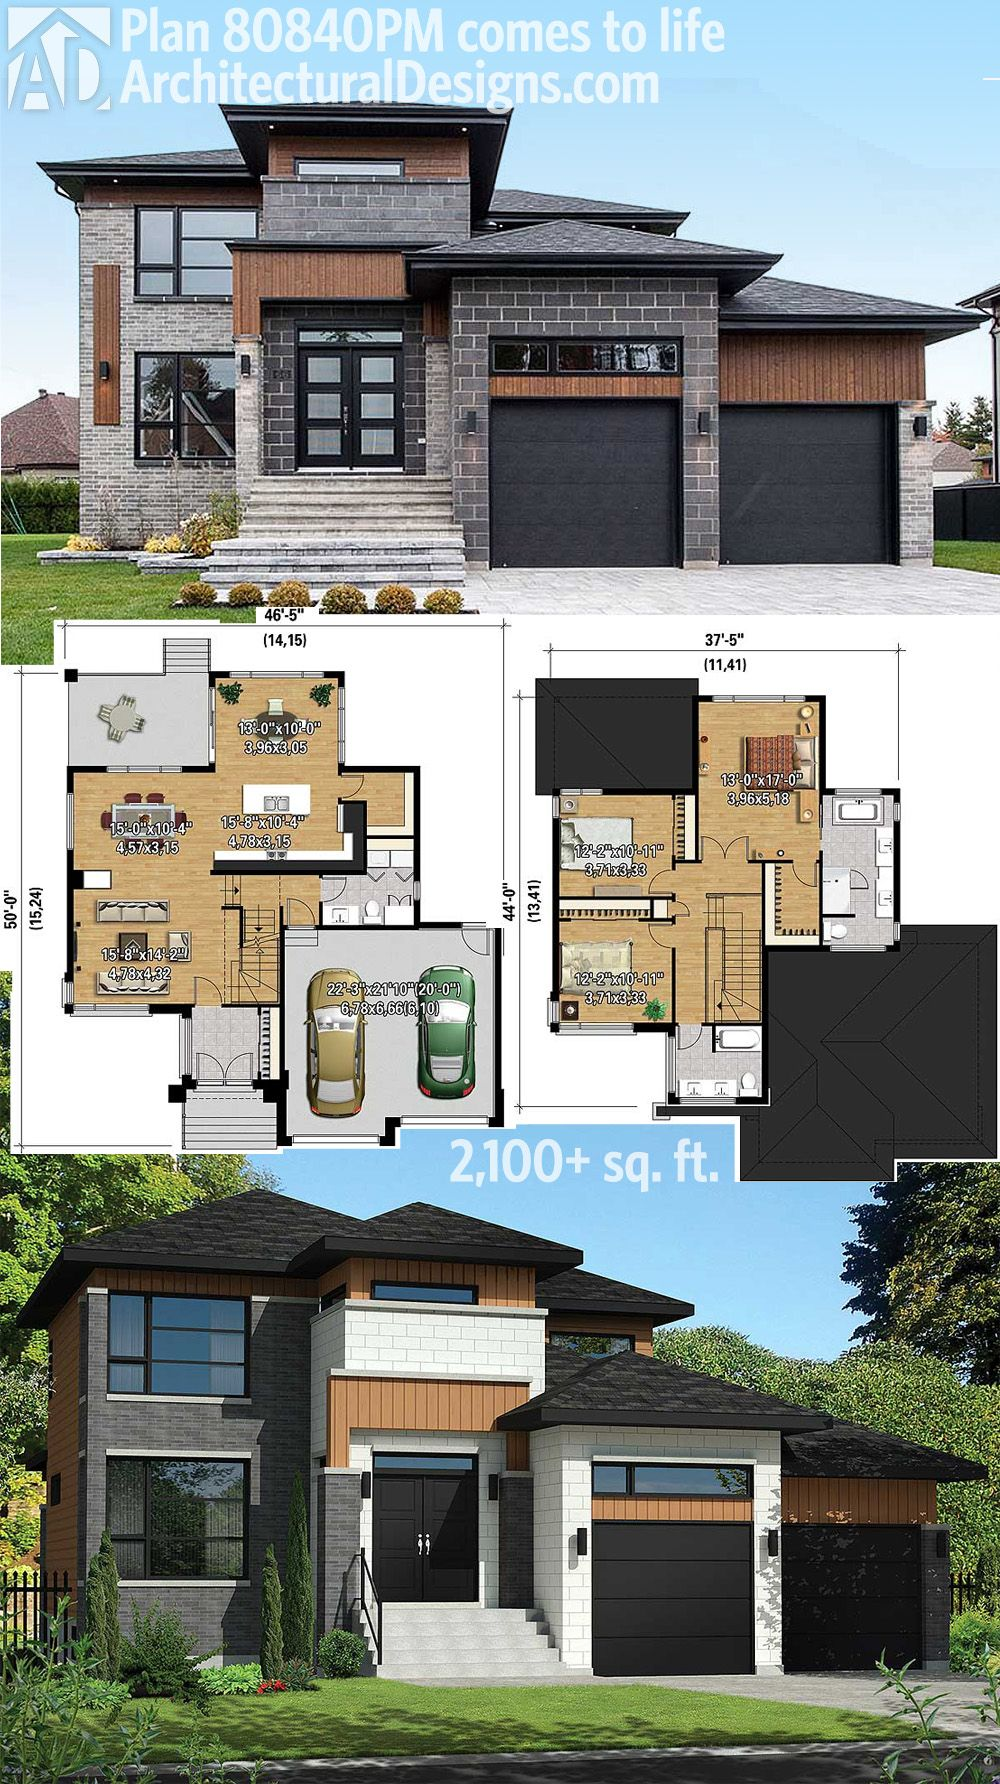 Plan 80840pm multi level modern house plan vacation homes pinterest house plans modern for Small modern house designs and floor plans